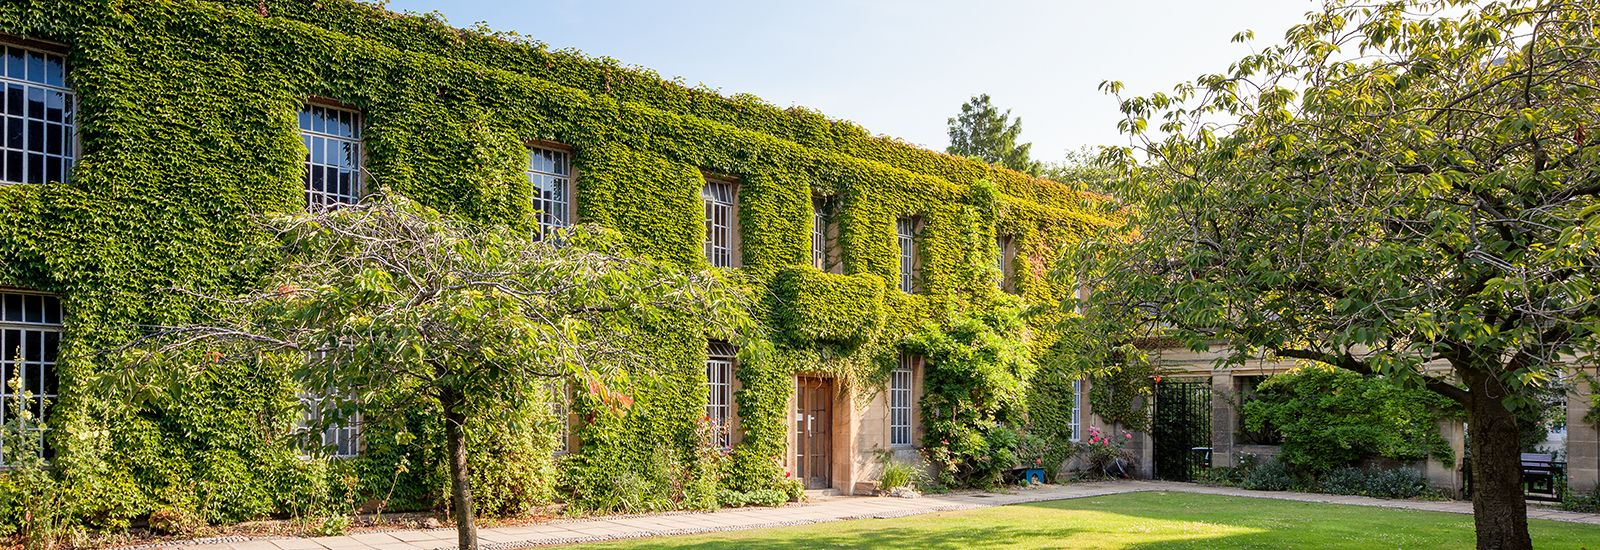 Buildings at Regent's Park covered in ivy